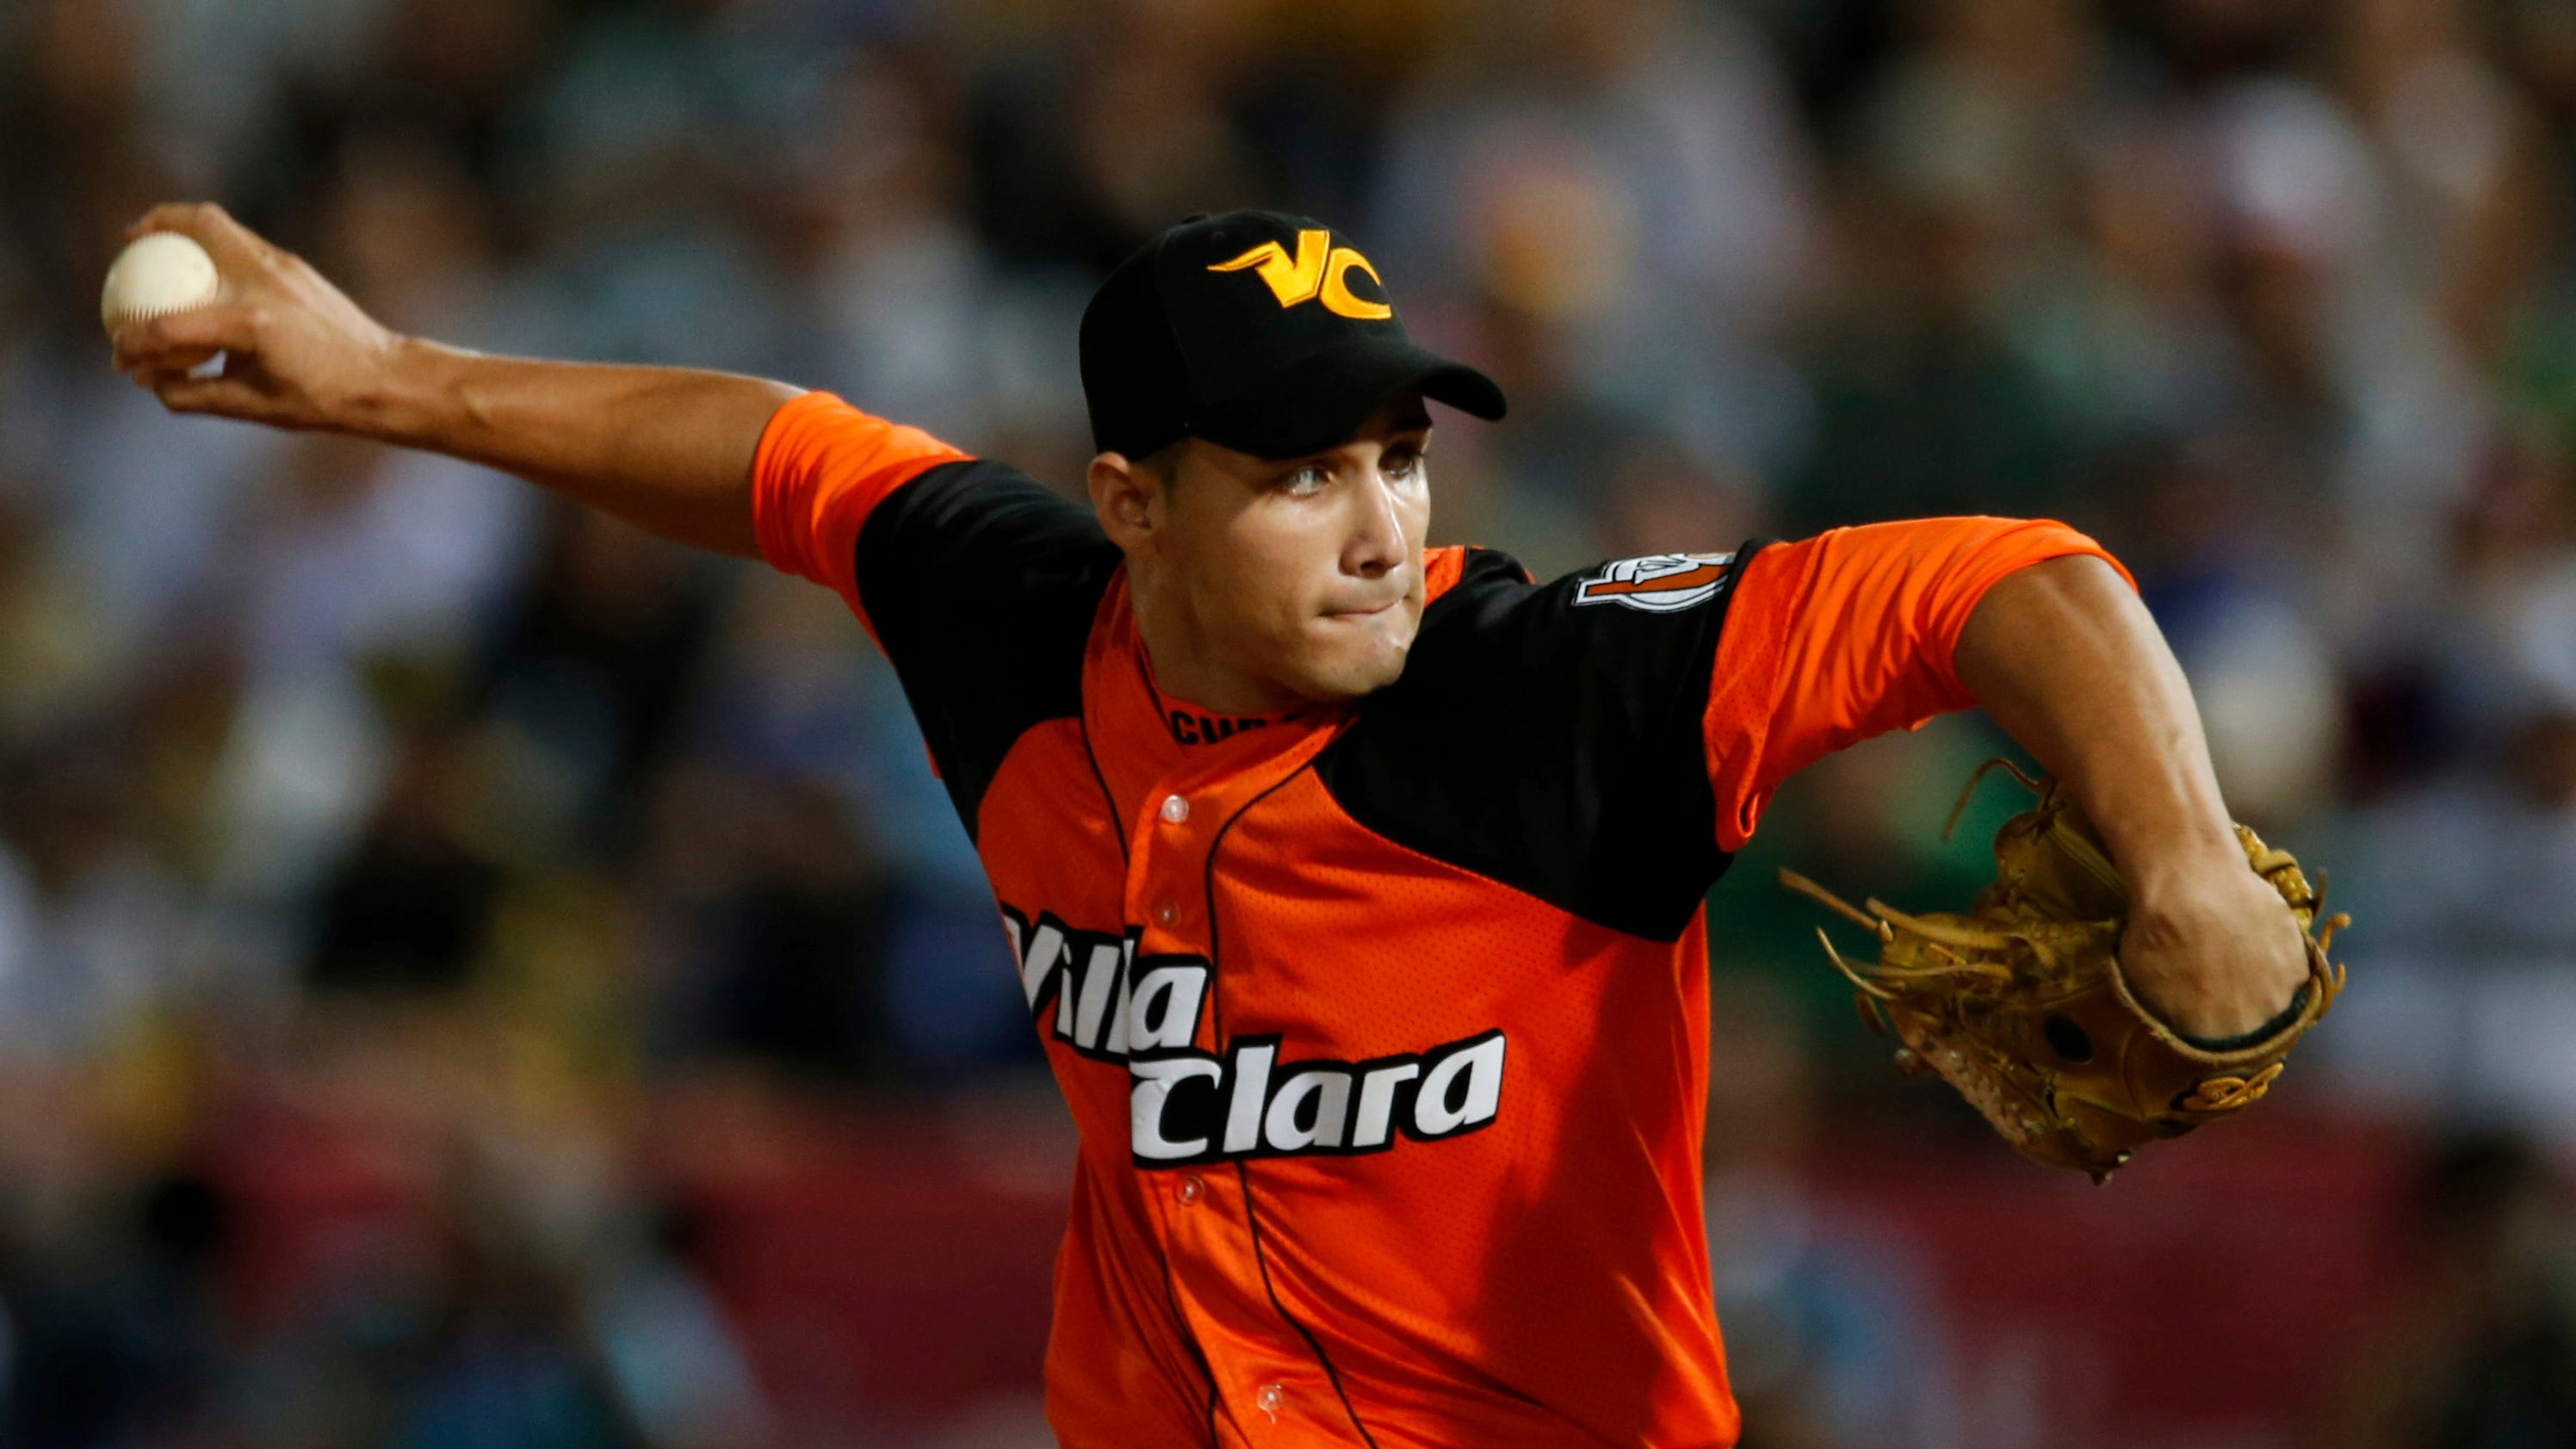 Cuban pitcher Norge Ruiz gets $2M signing bonus with A's